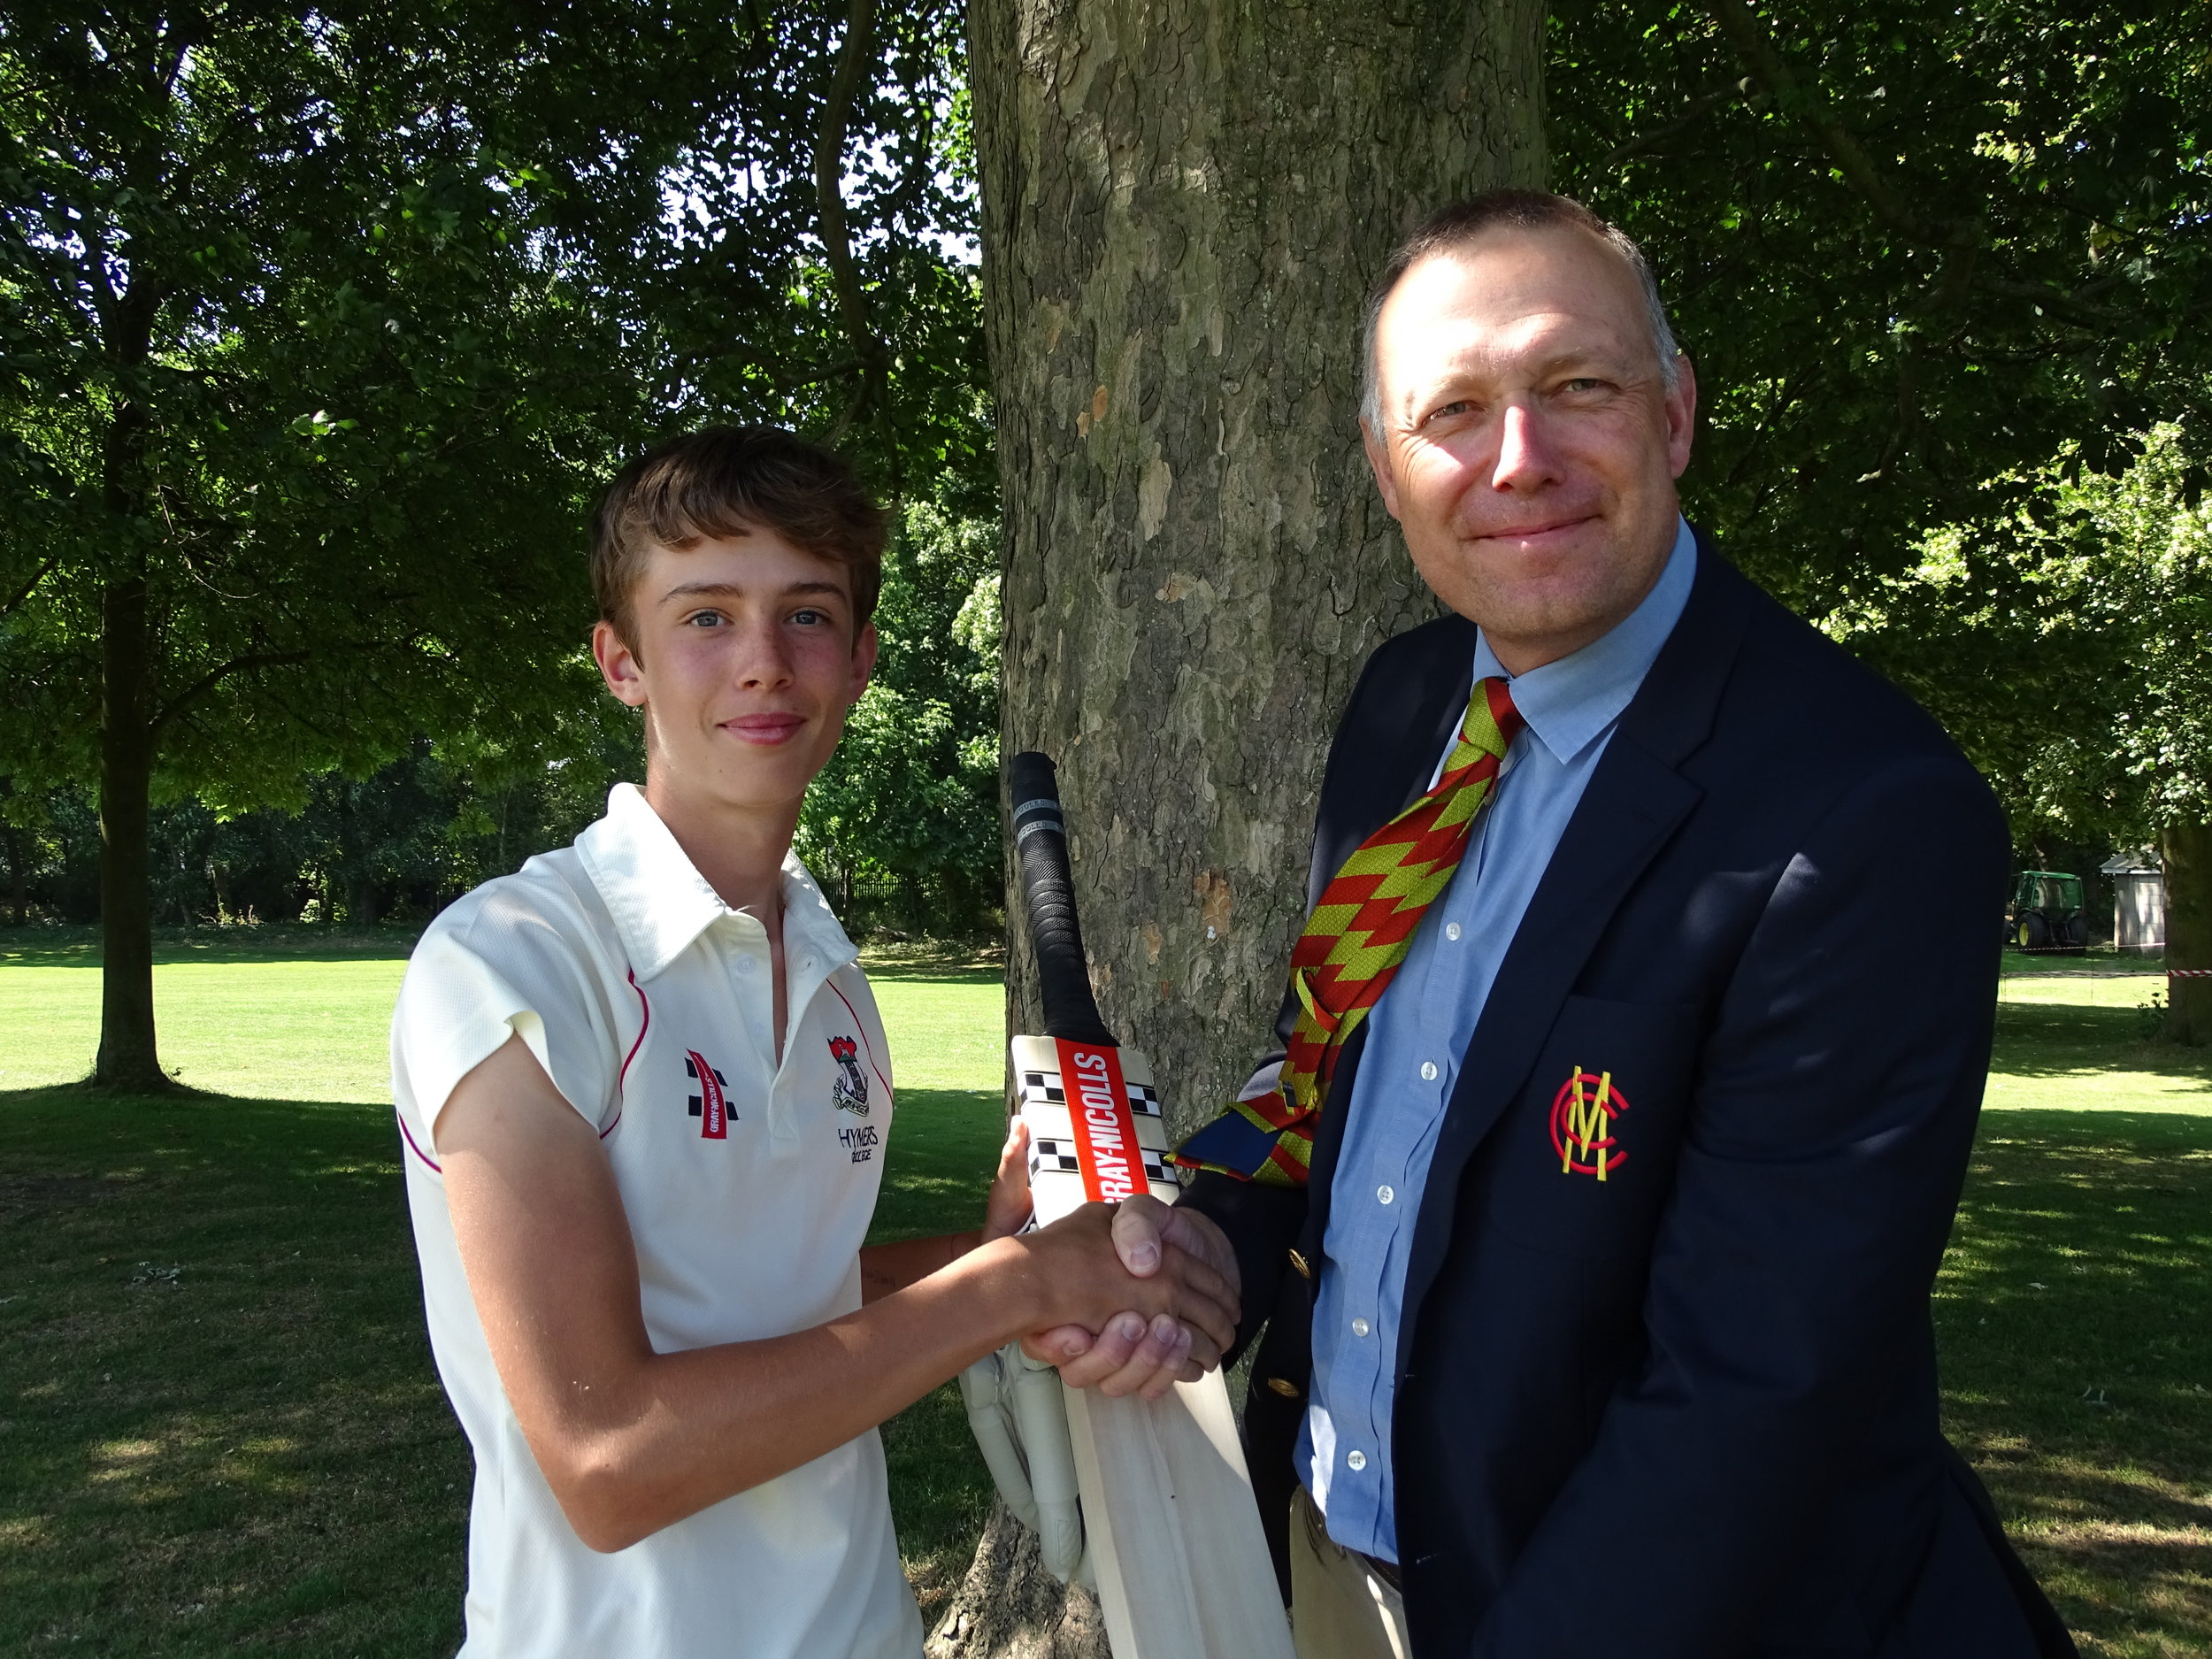 Sam receives his commemorative bat and gloves